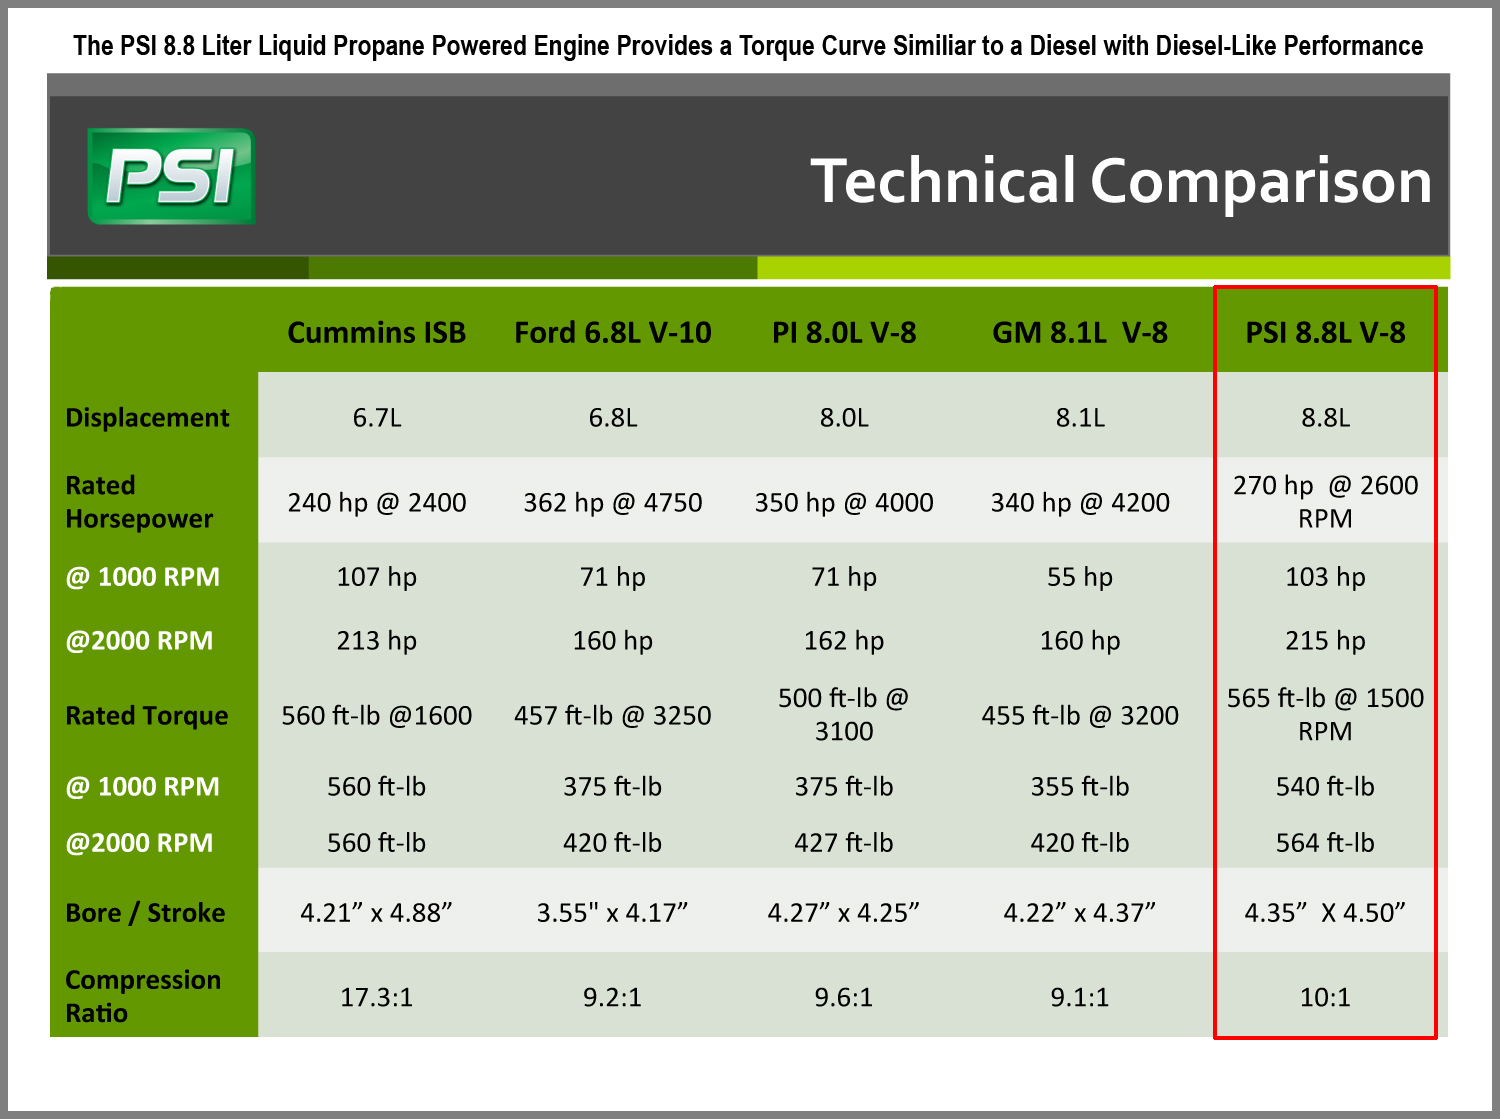 PSI 8.8 Liter Engine Technical Comparison copy